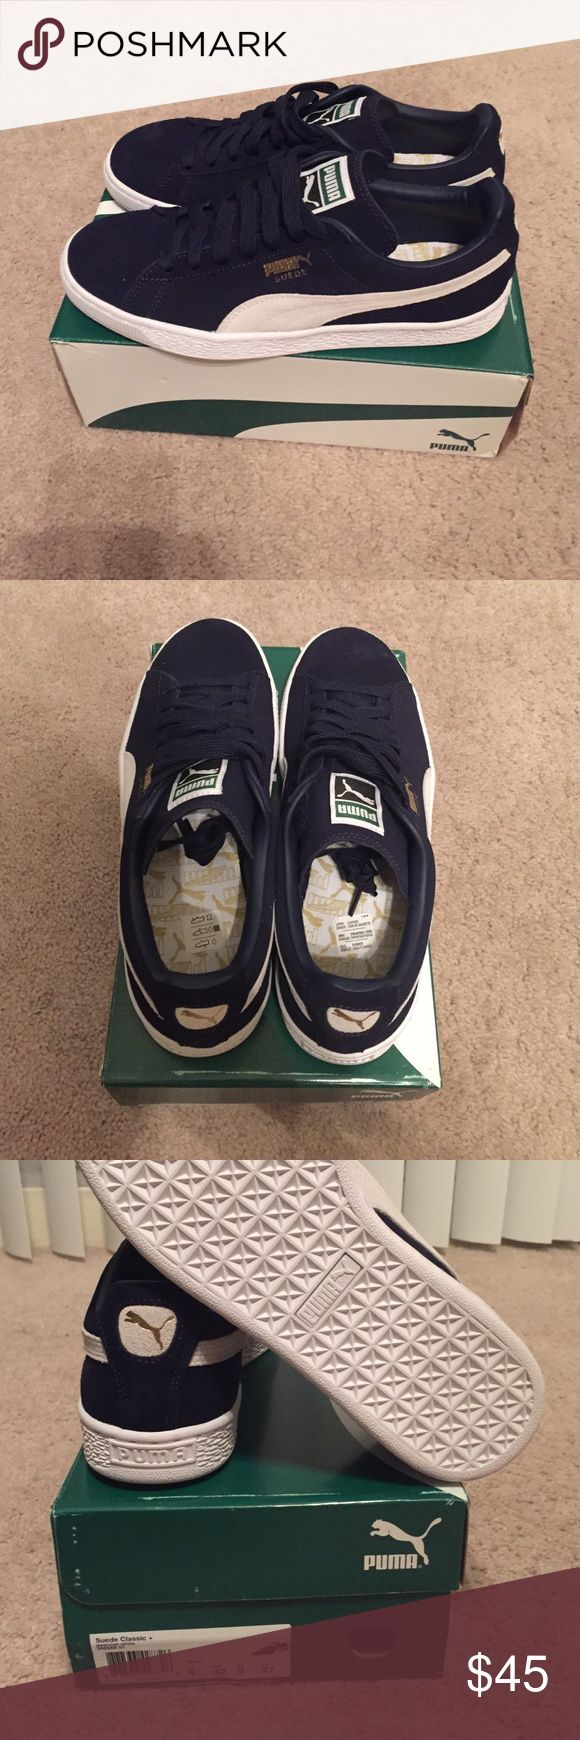 Puma suede Classic Puma suede classic in navy blue (peacoat). Brand new in box with stickers. Never worn. Men's size 9.0. Full leather/suede upper. Synthetic leather lining. Puma Shoes Sneakers